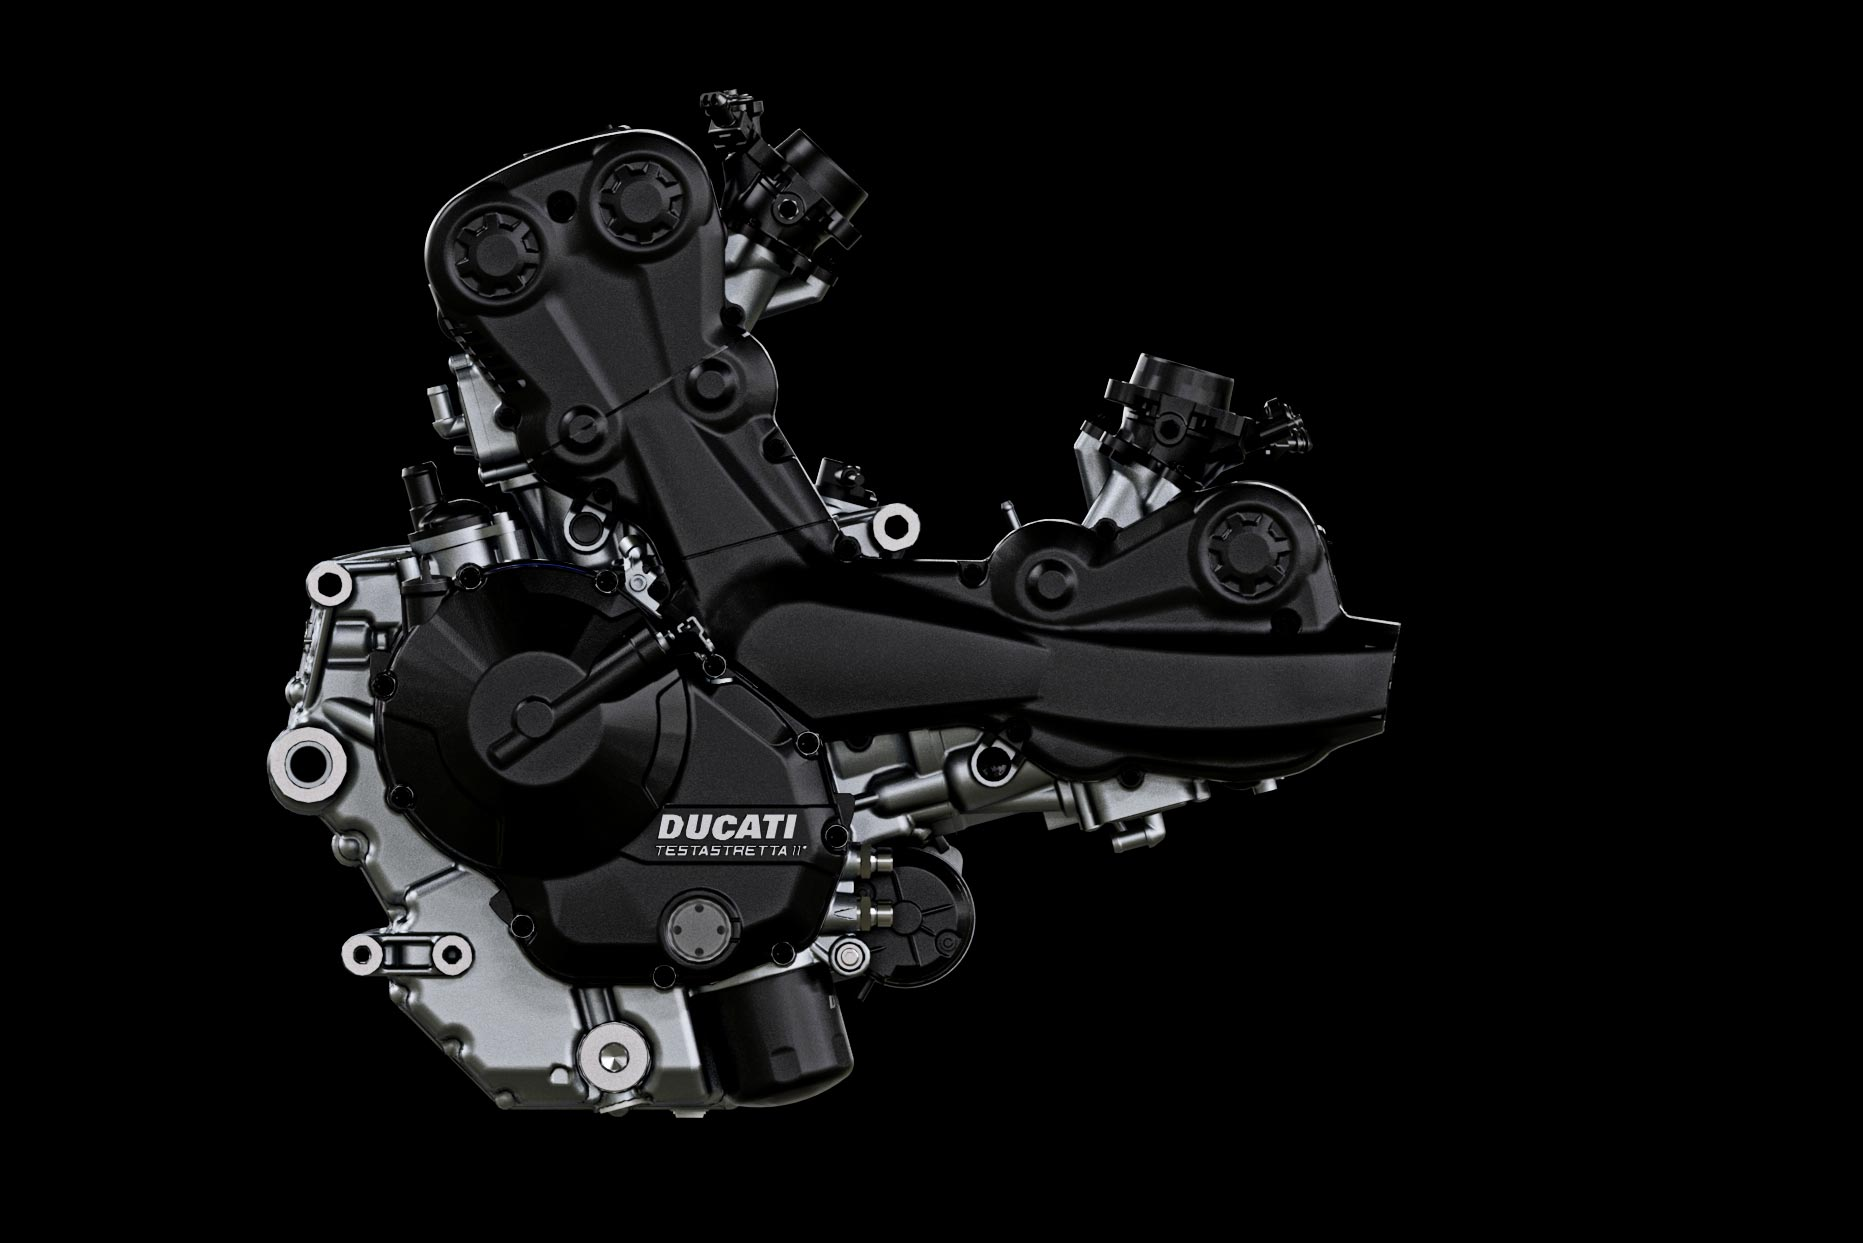 Ducati  Is Liquid Cooled Or Air Cooled